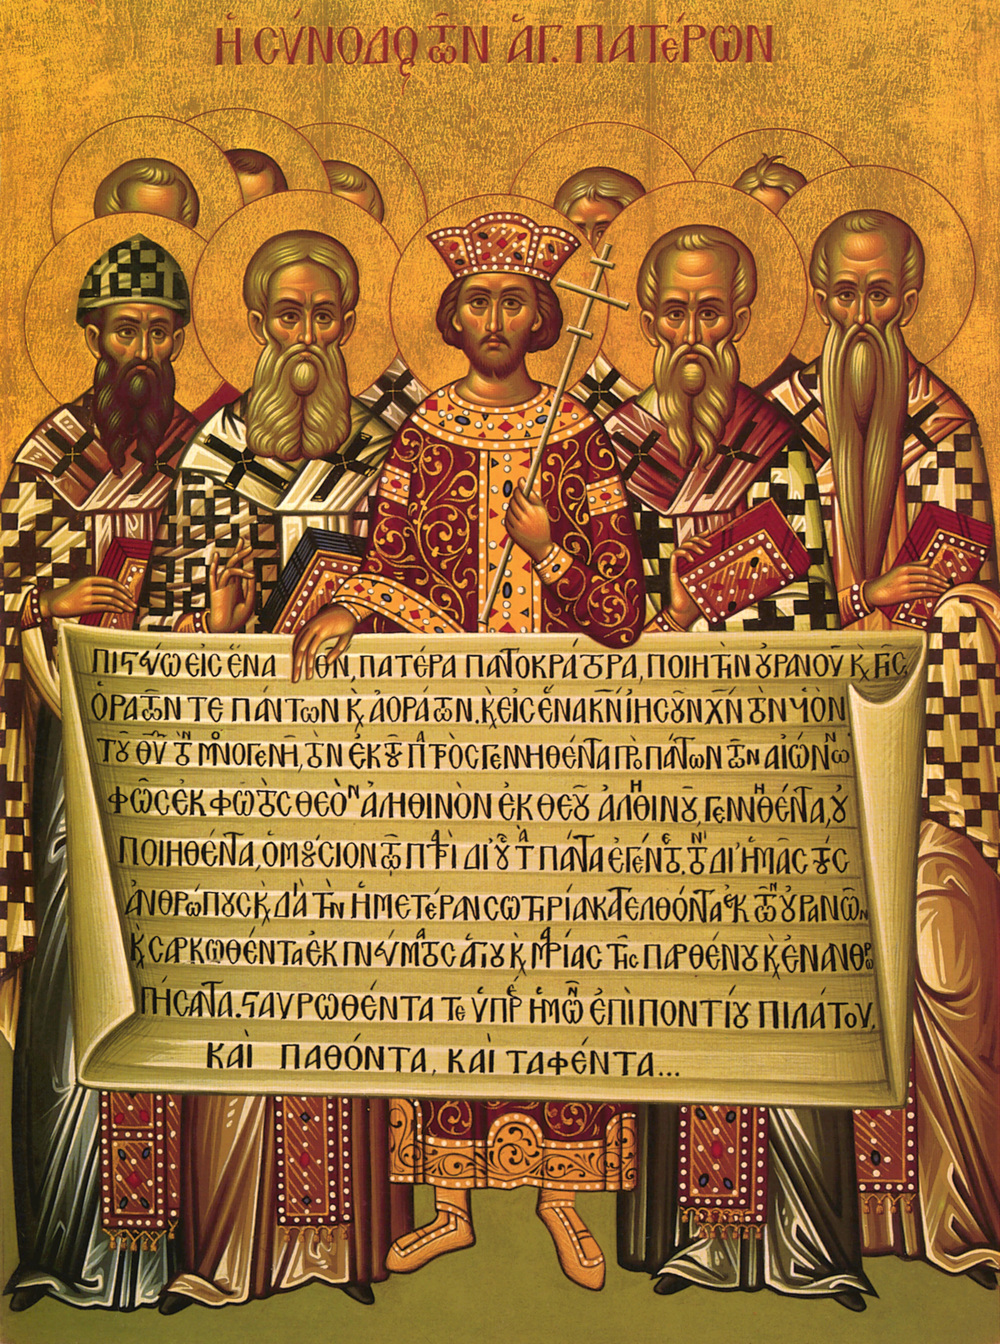 The Holy Fathers of the First Ecumenical Synod